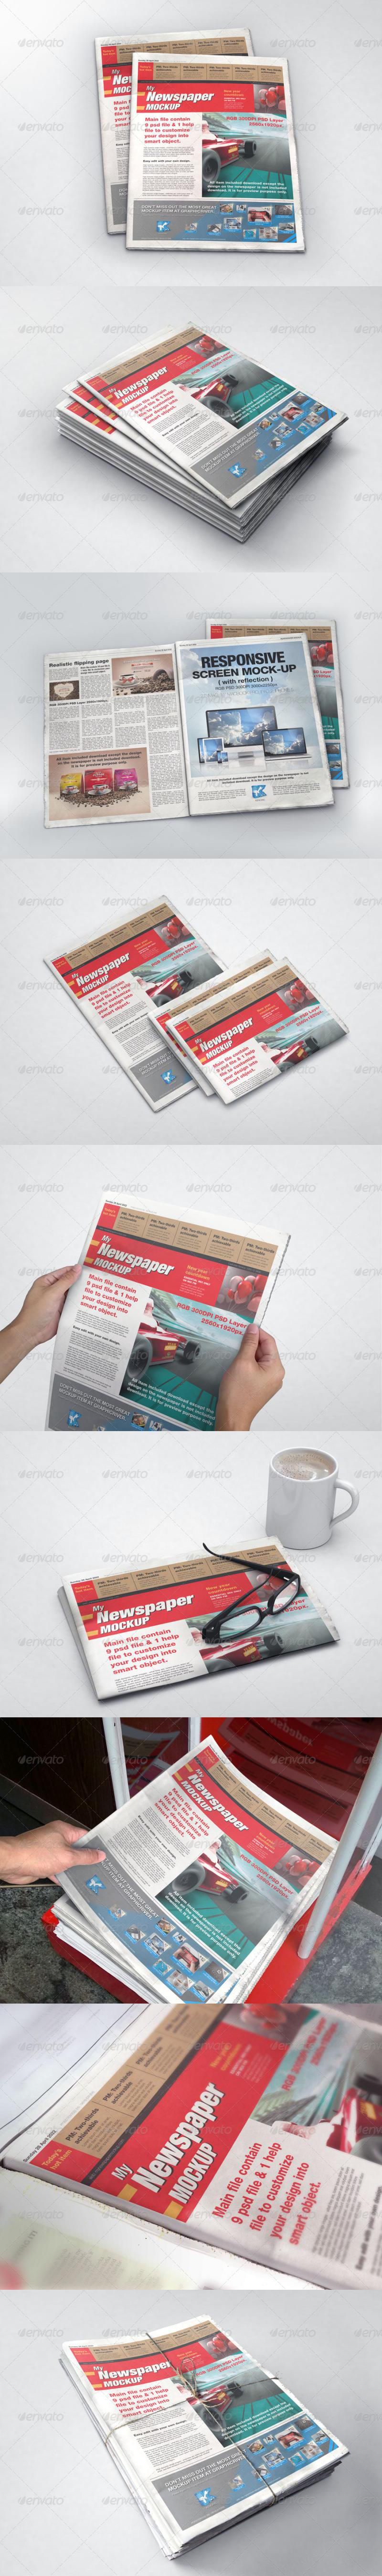 MyNewspaper Mock-up